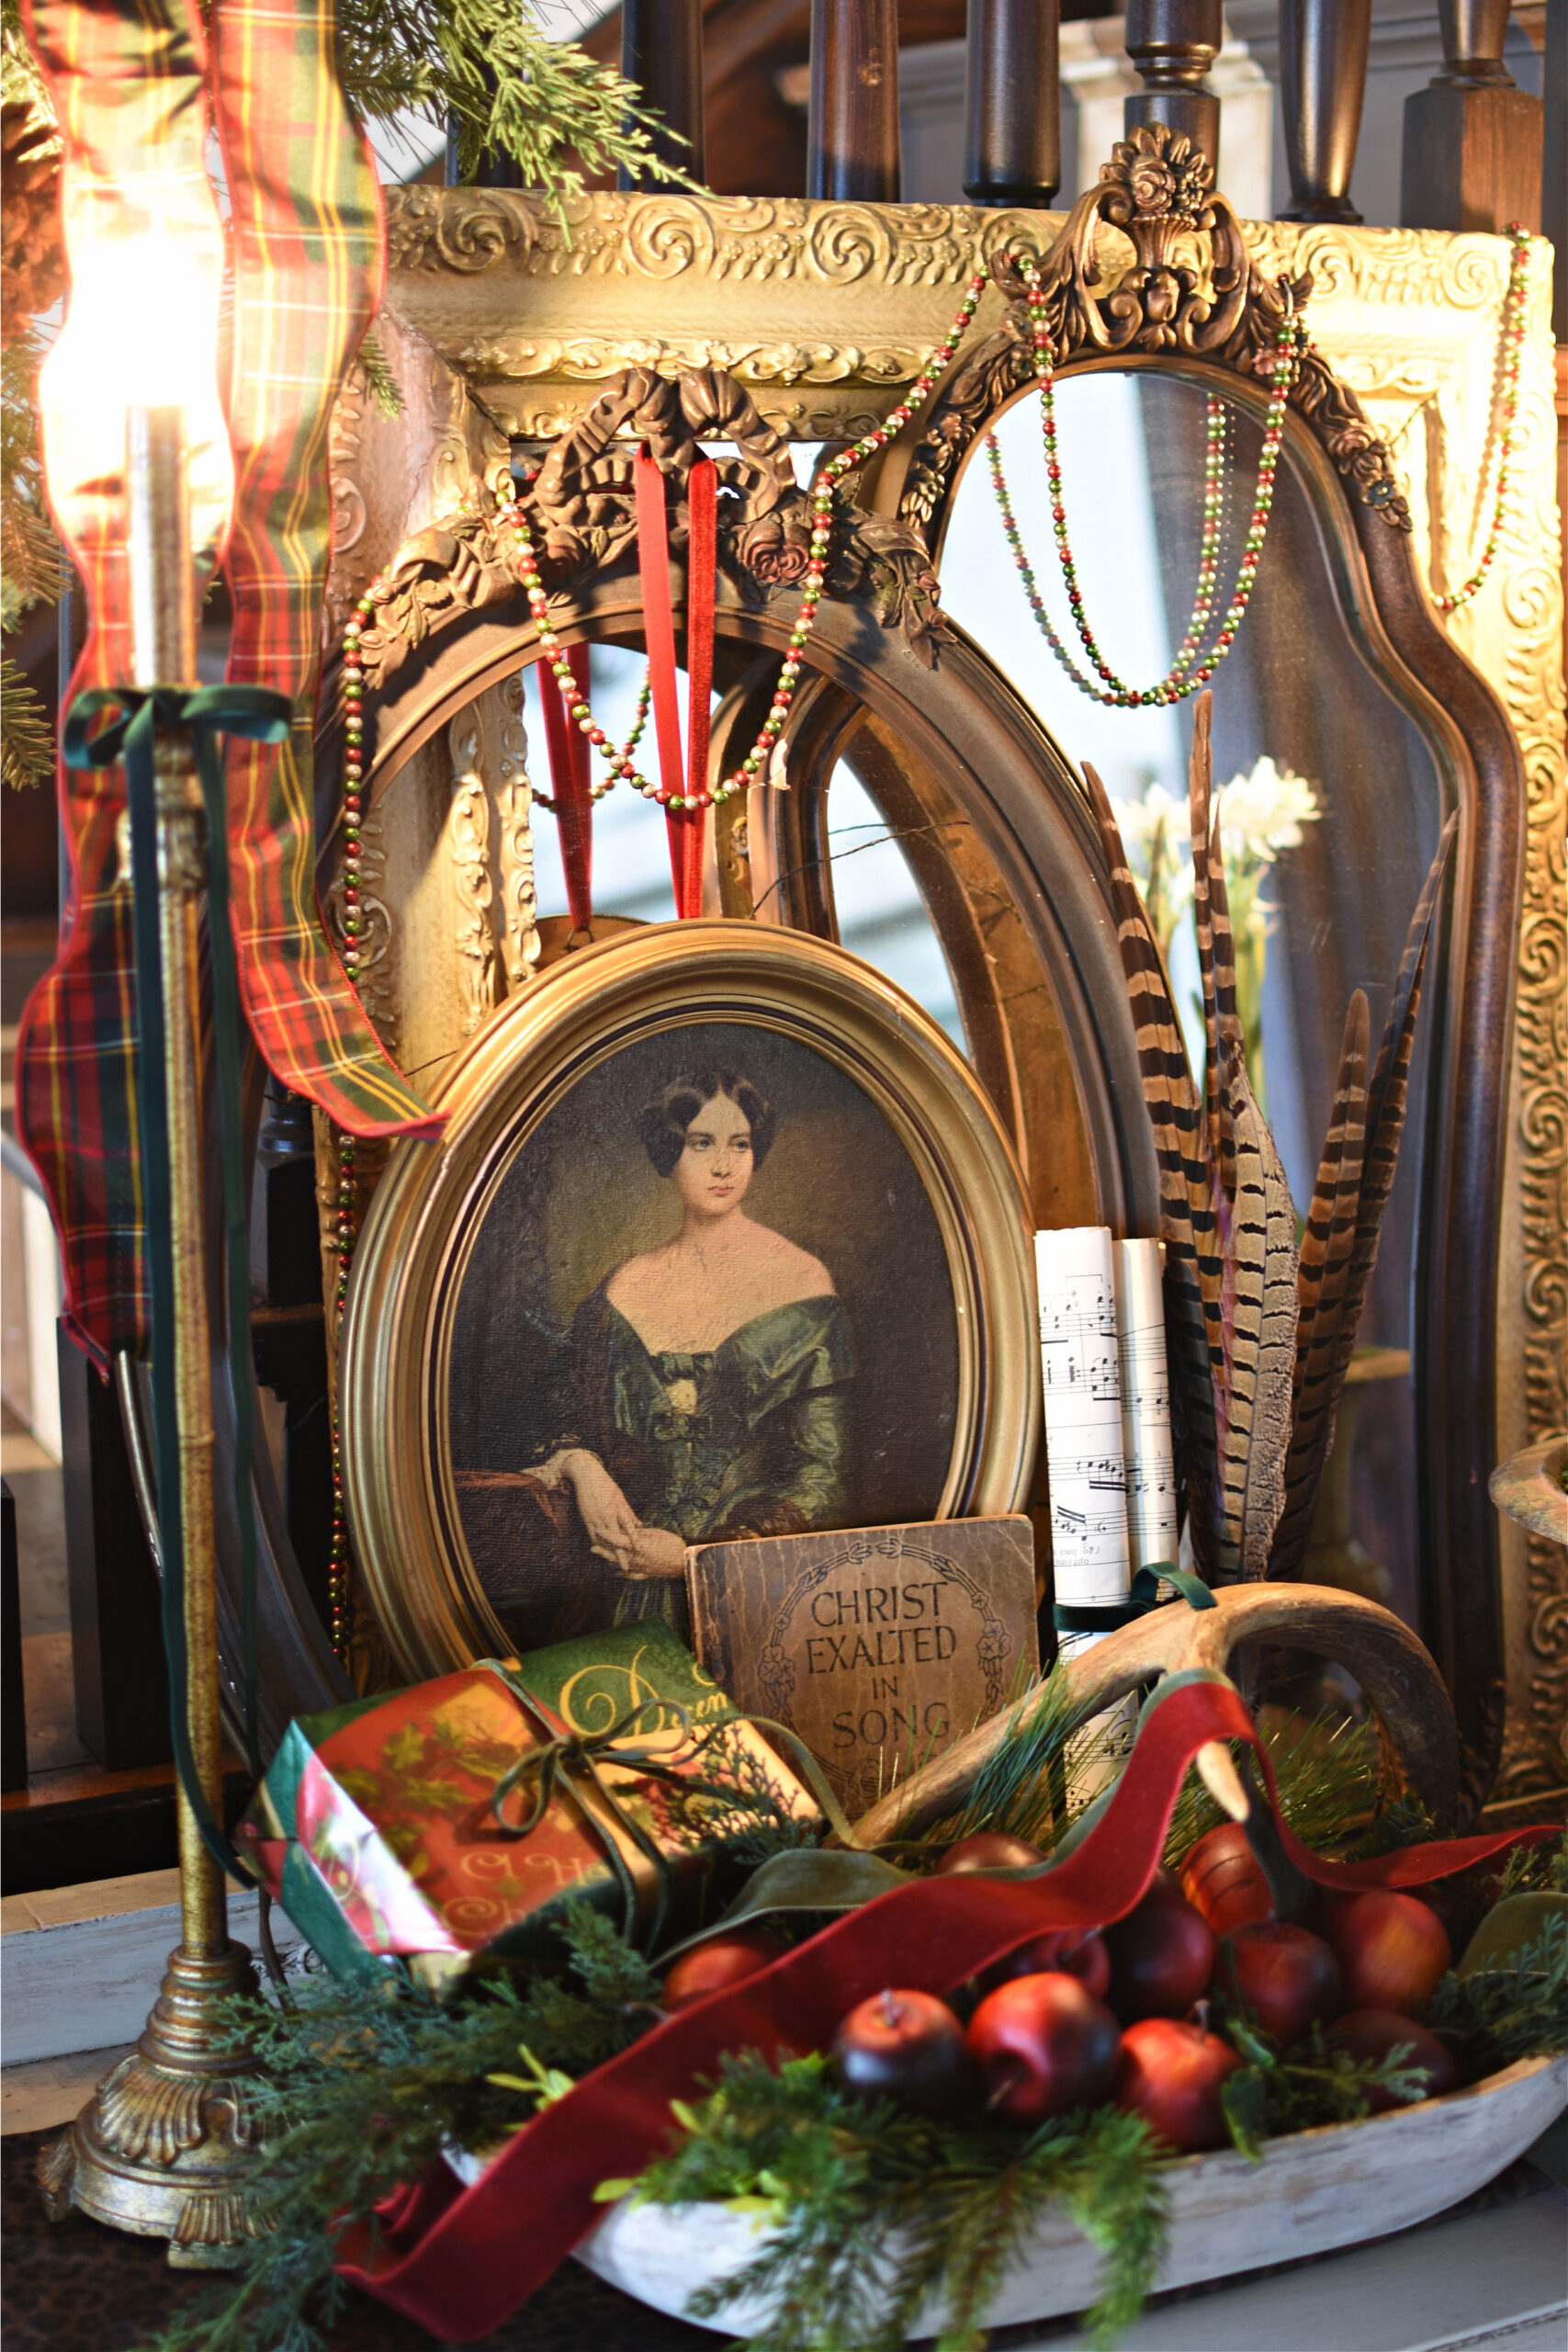 Victorian Christmas Decorating Ideas Traditional Christmas decorating with gold, red, green and plaid. Vintage Christmas vignette. Old World Christmas decorating.